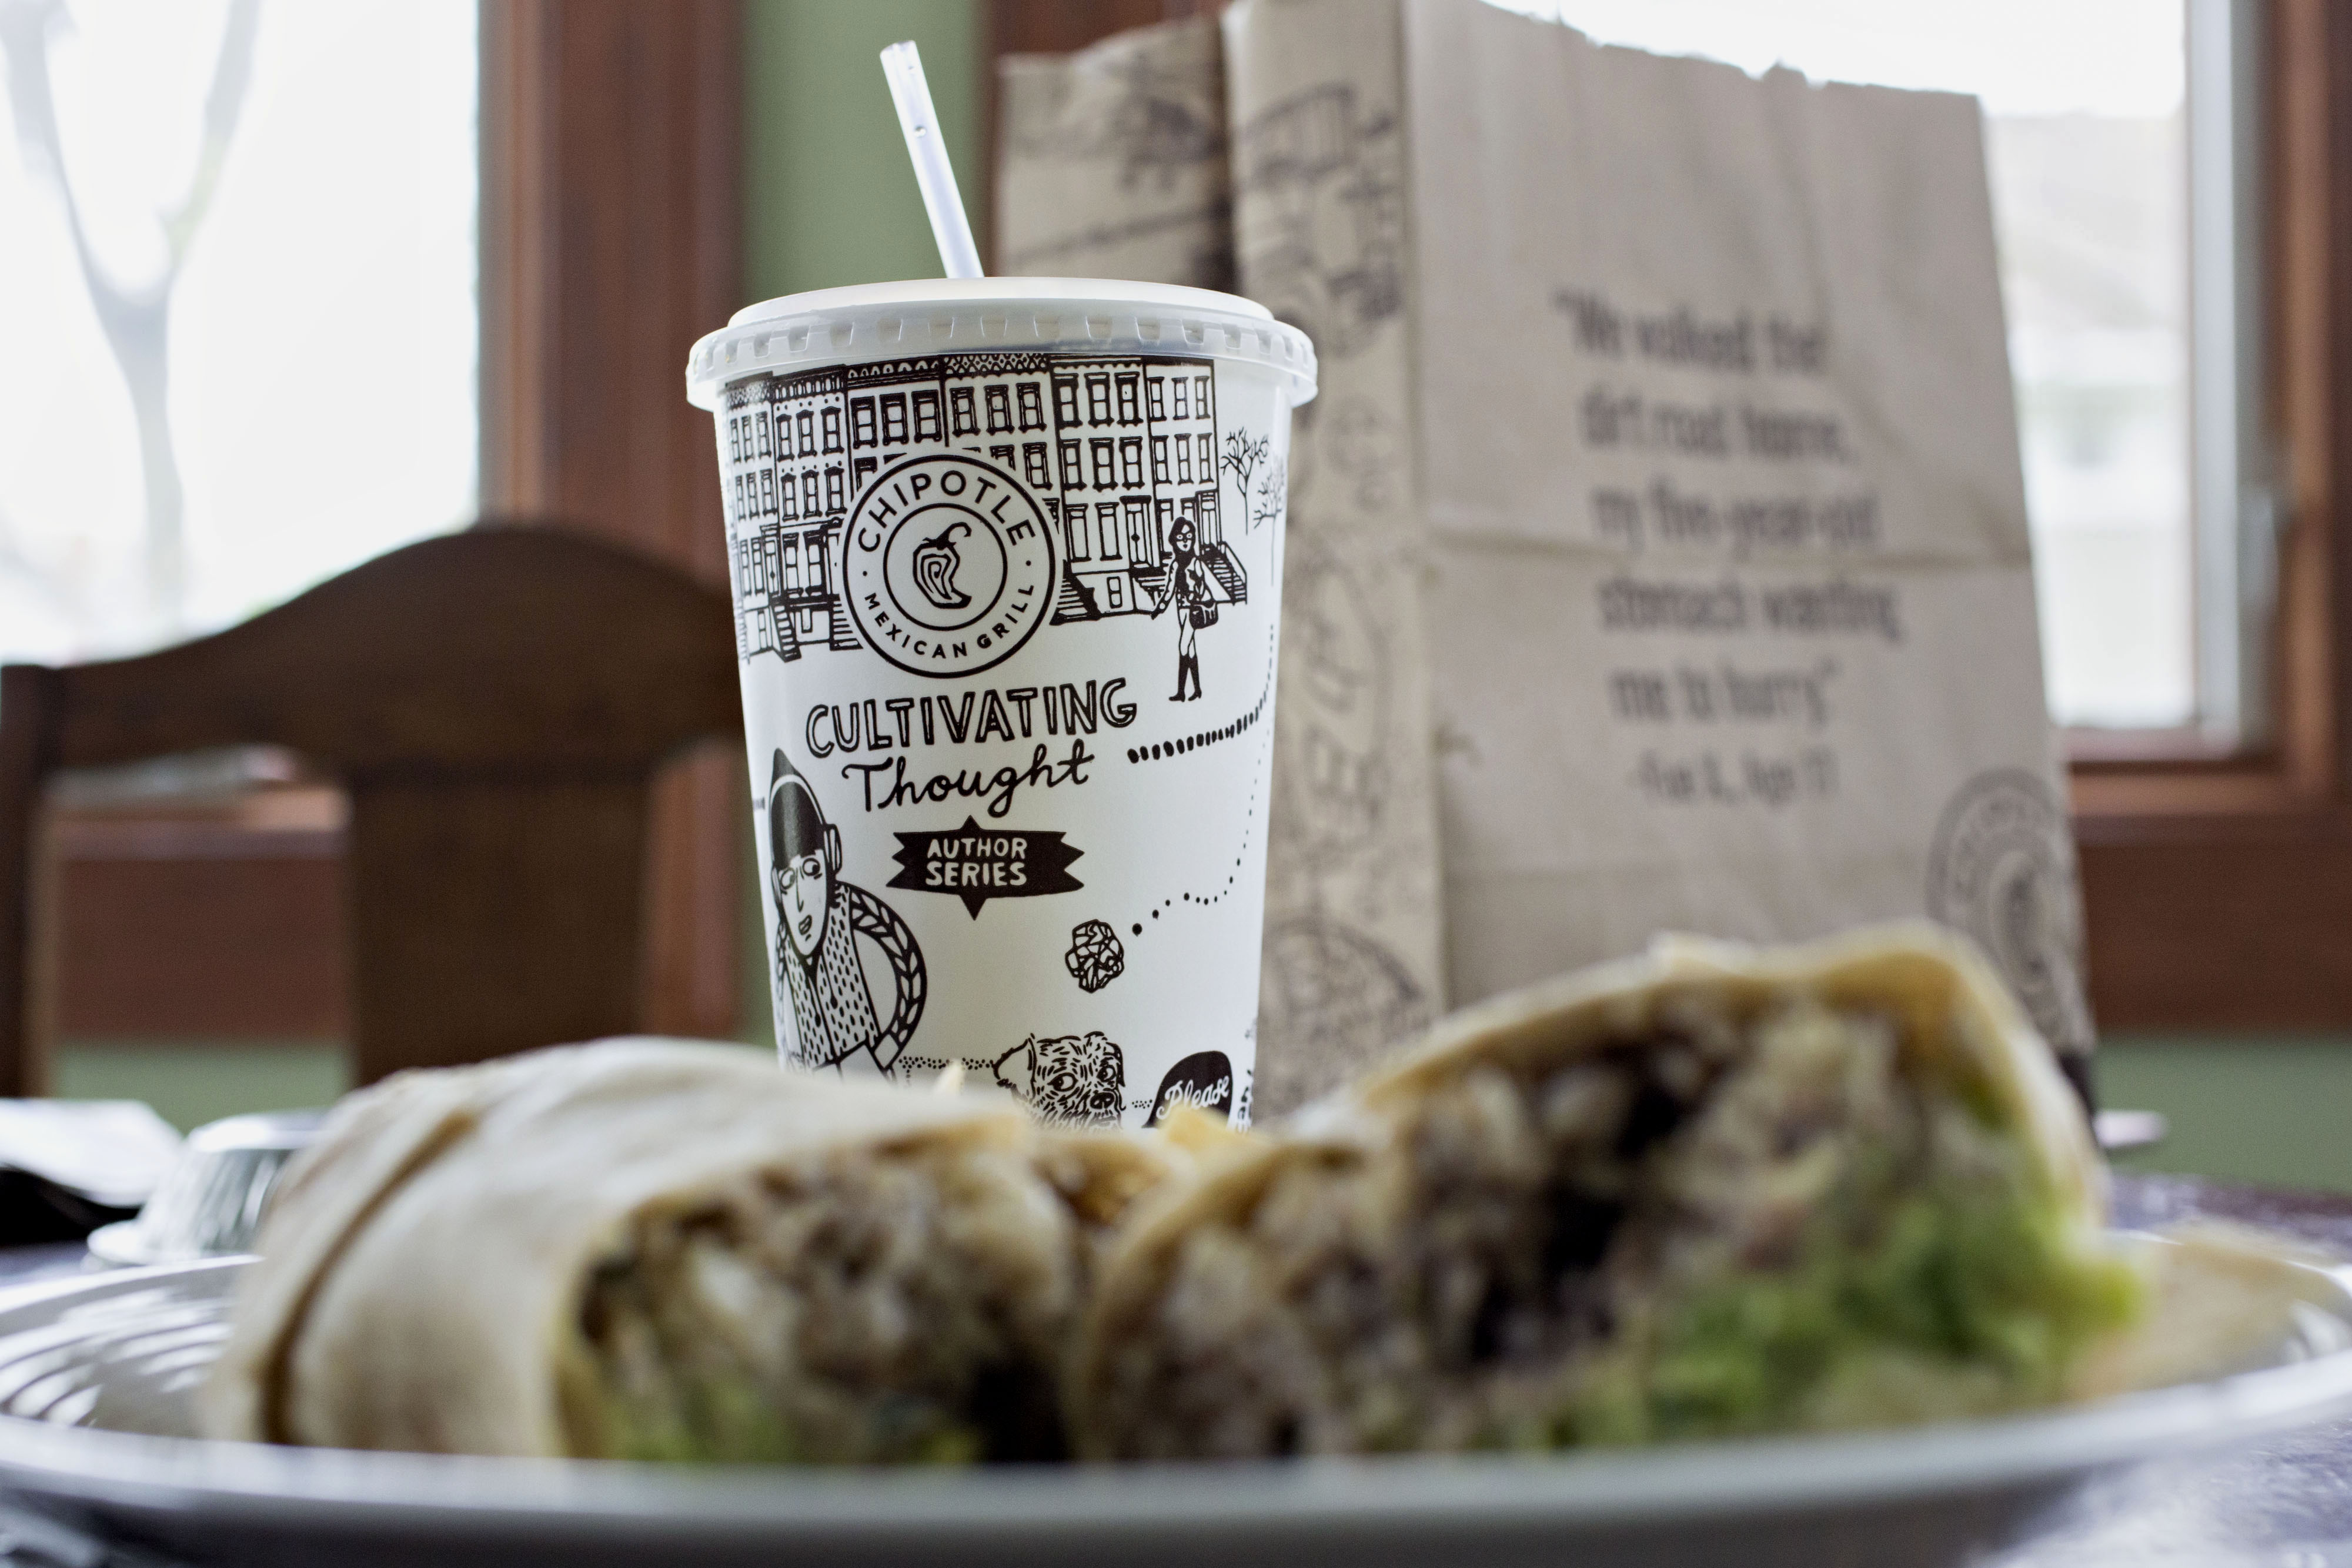 Chipotle Mexican Grill Inc. take-out food is arranged for a photograph in Tiskilwa, Illinois, U.S., on Friday, April 22, 2016. Chipotle Mexican Grill Inc. is expected to release earnings figures on April 26.